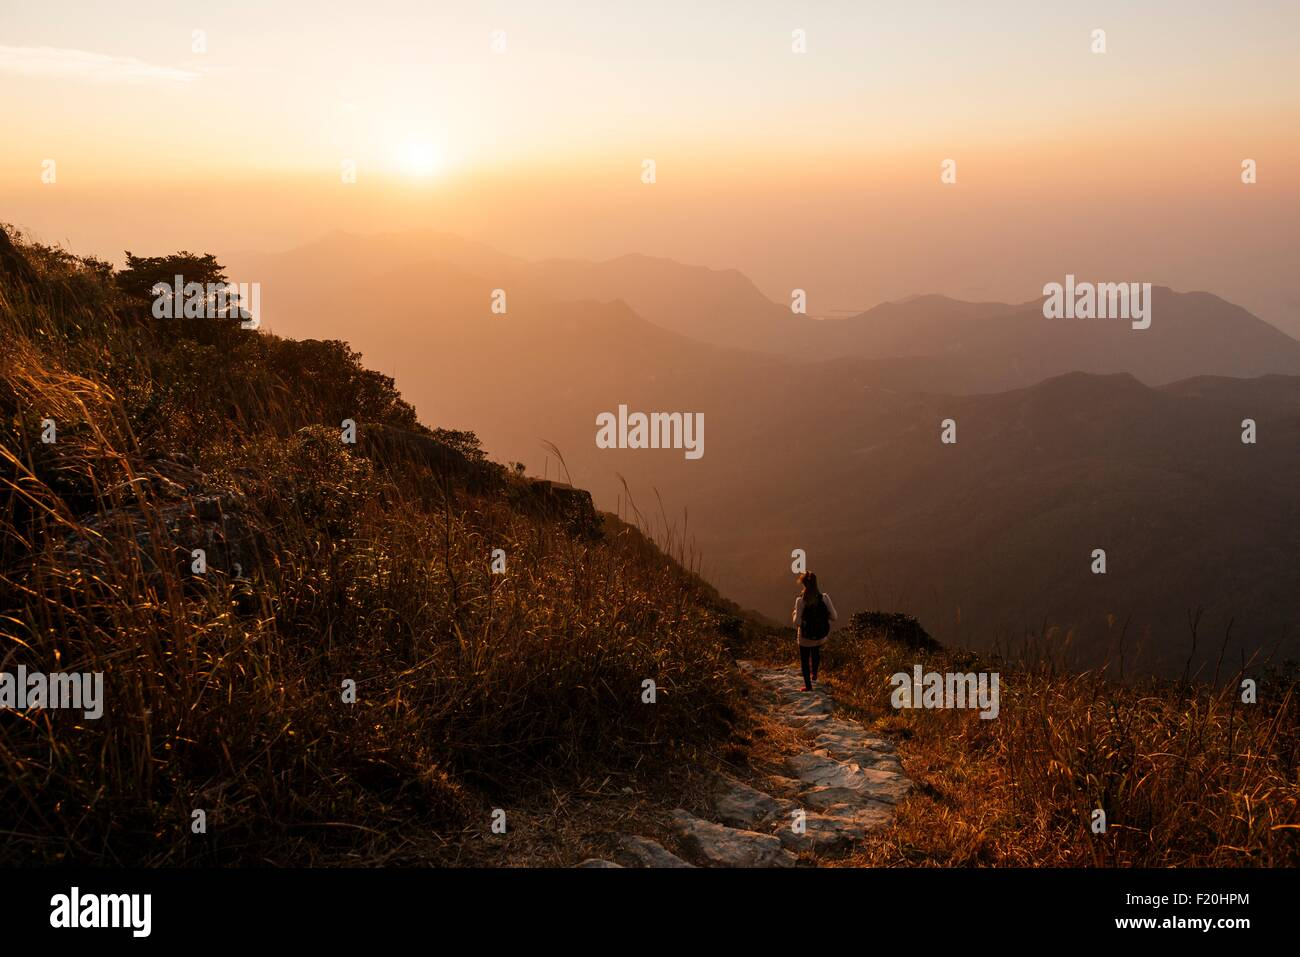 Rear view of hiker hiking along trail on Lantau Peak, Lantau Island, Hong Kong, China - Stock Image